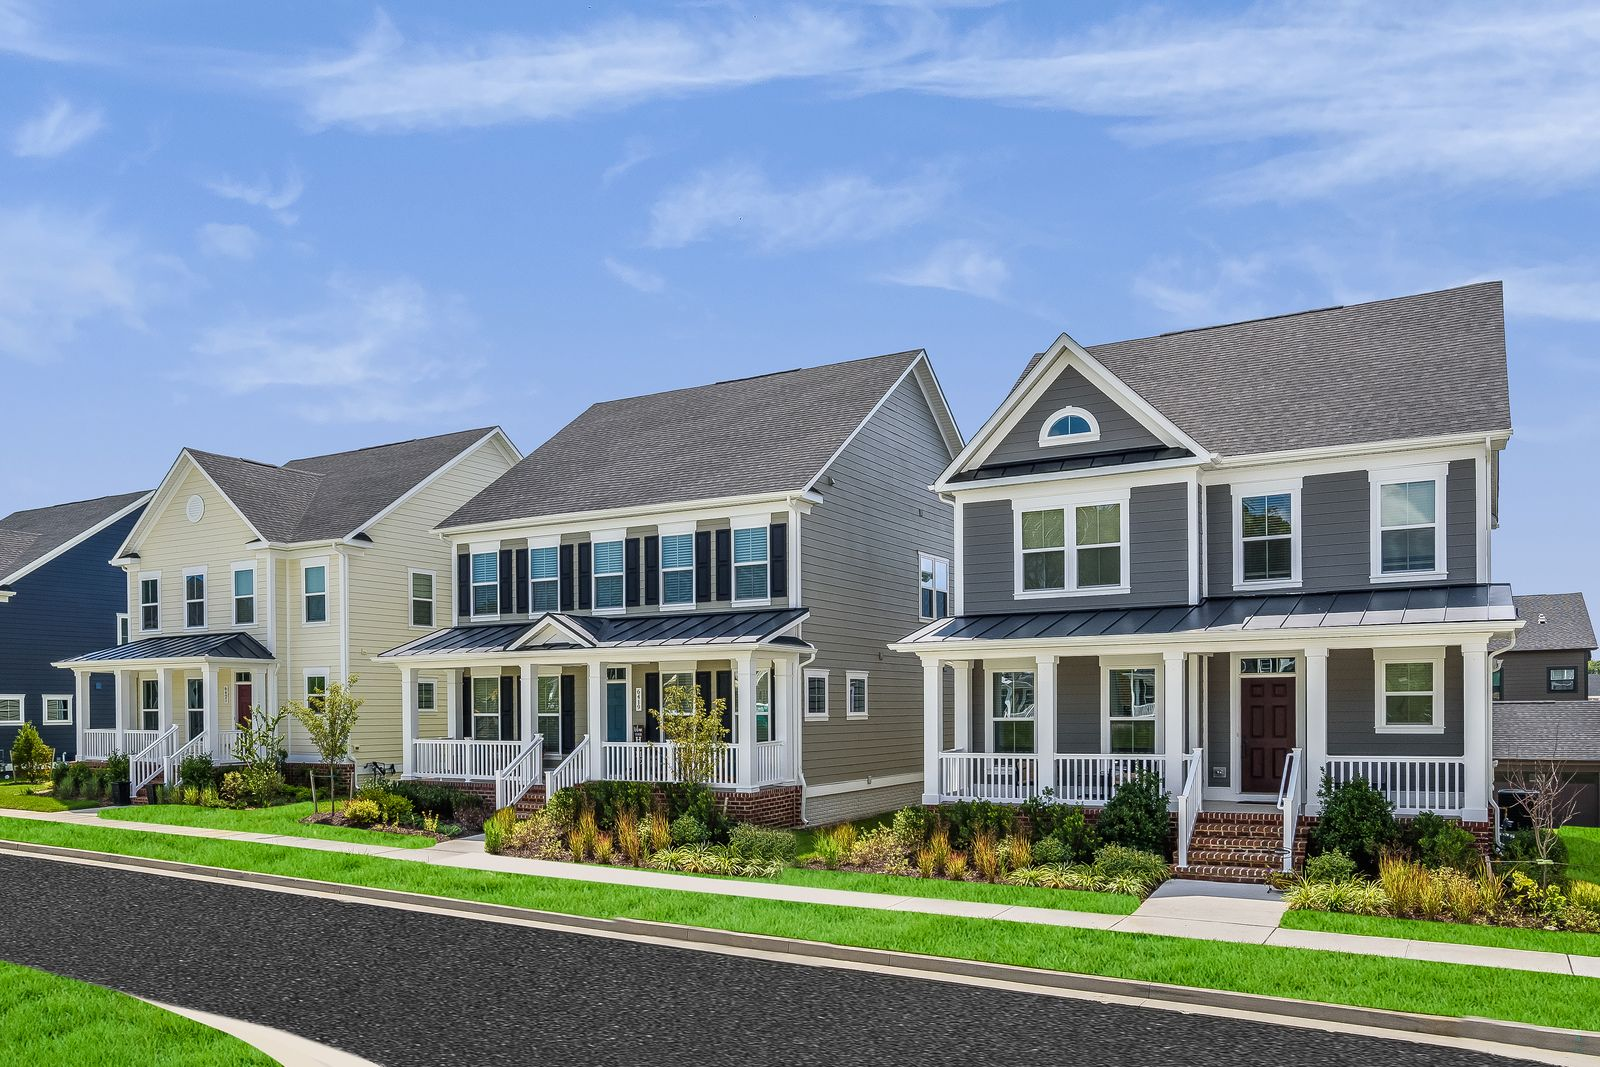 STEPHENS LANDING - NOW OPEN FROM THE UPPER $300S!:New homes in a charming, established community, walking distance to the town of Stephens City!Schedule your visit today!